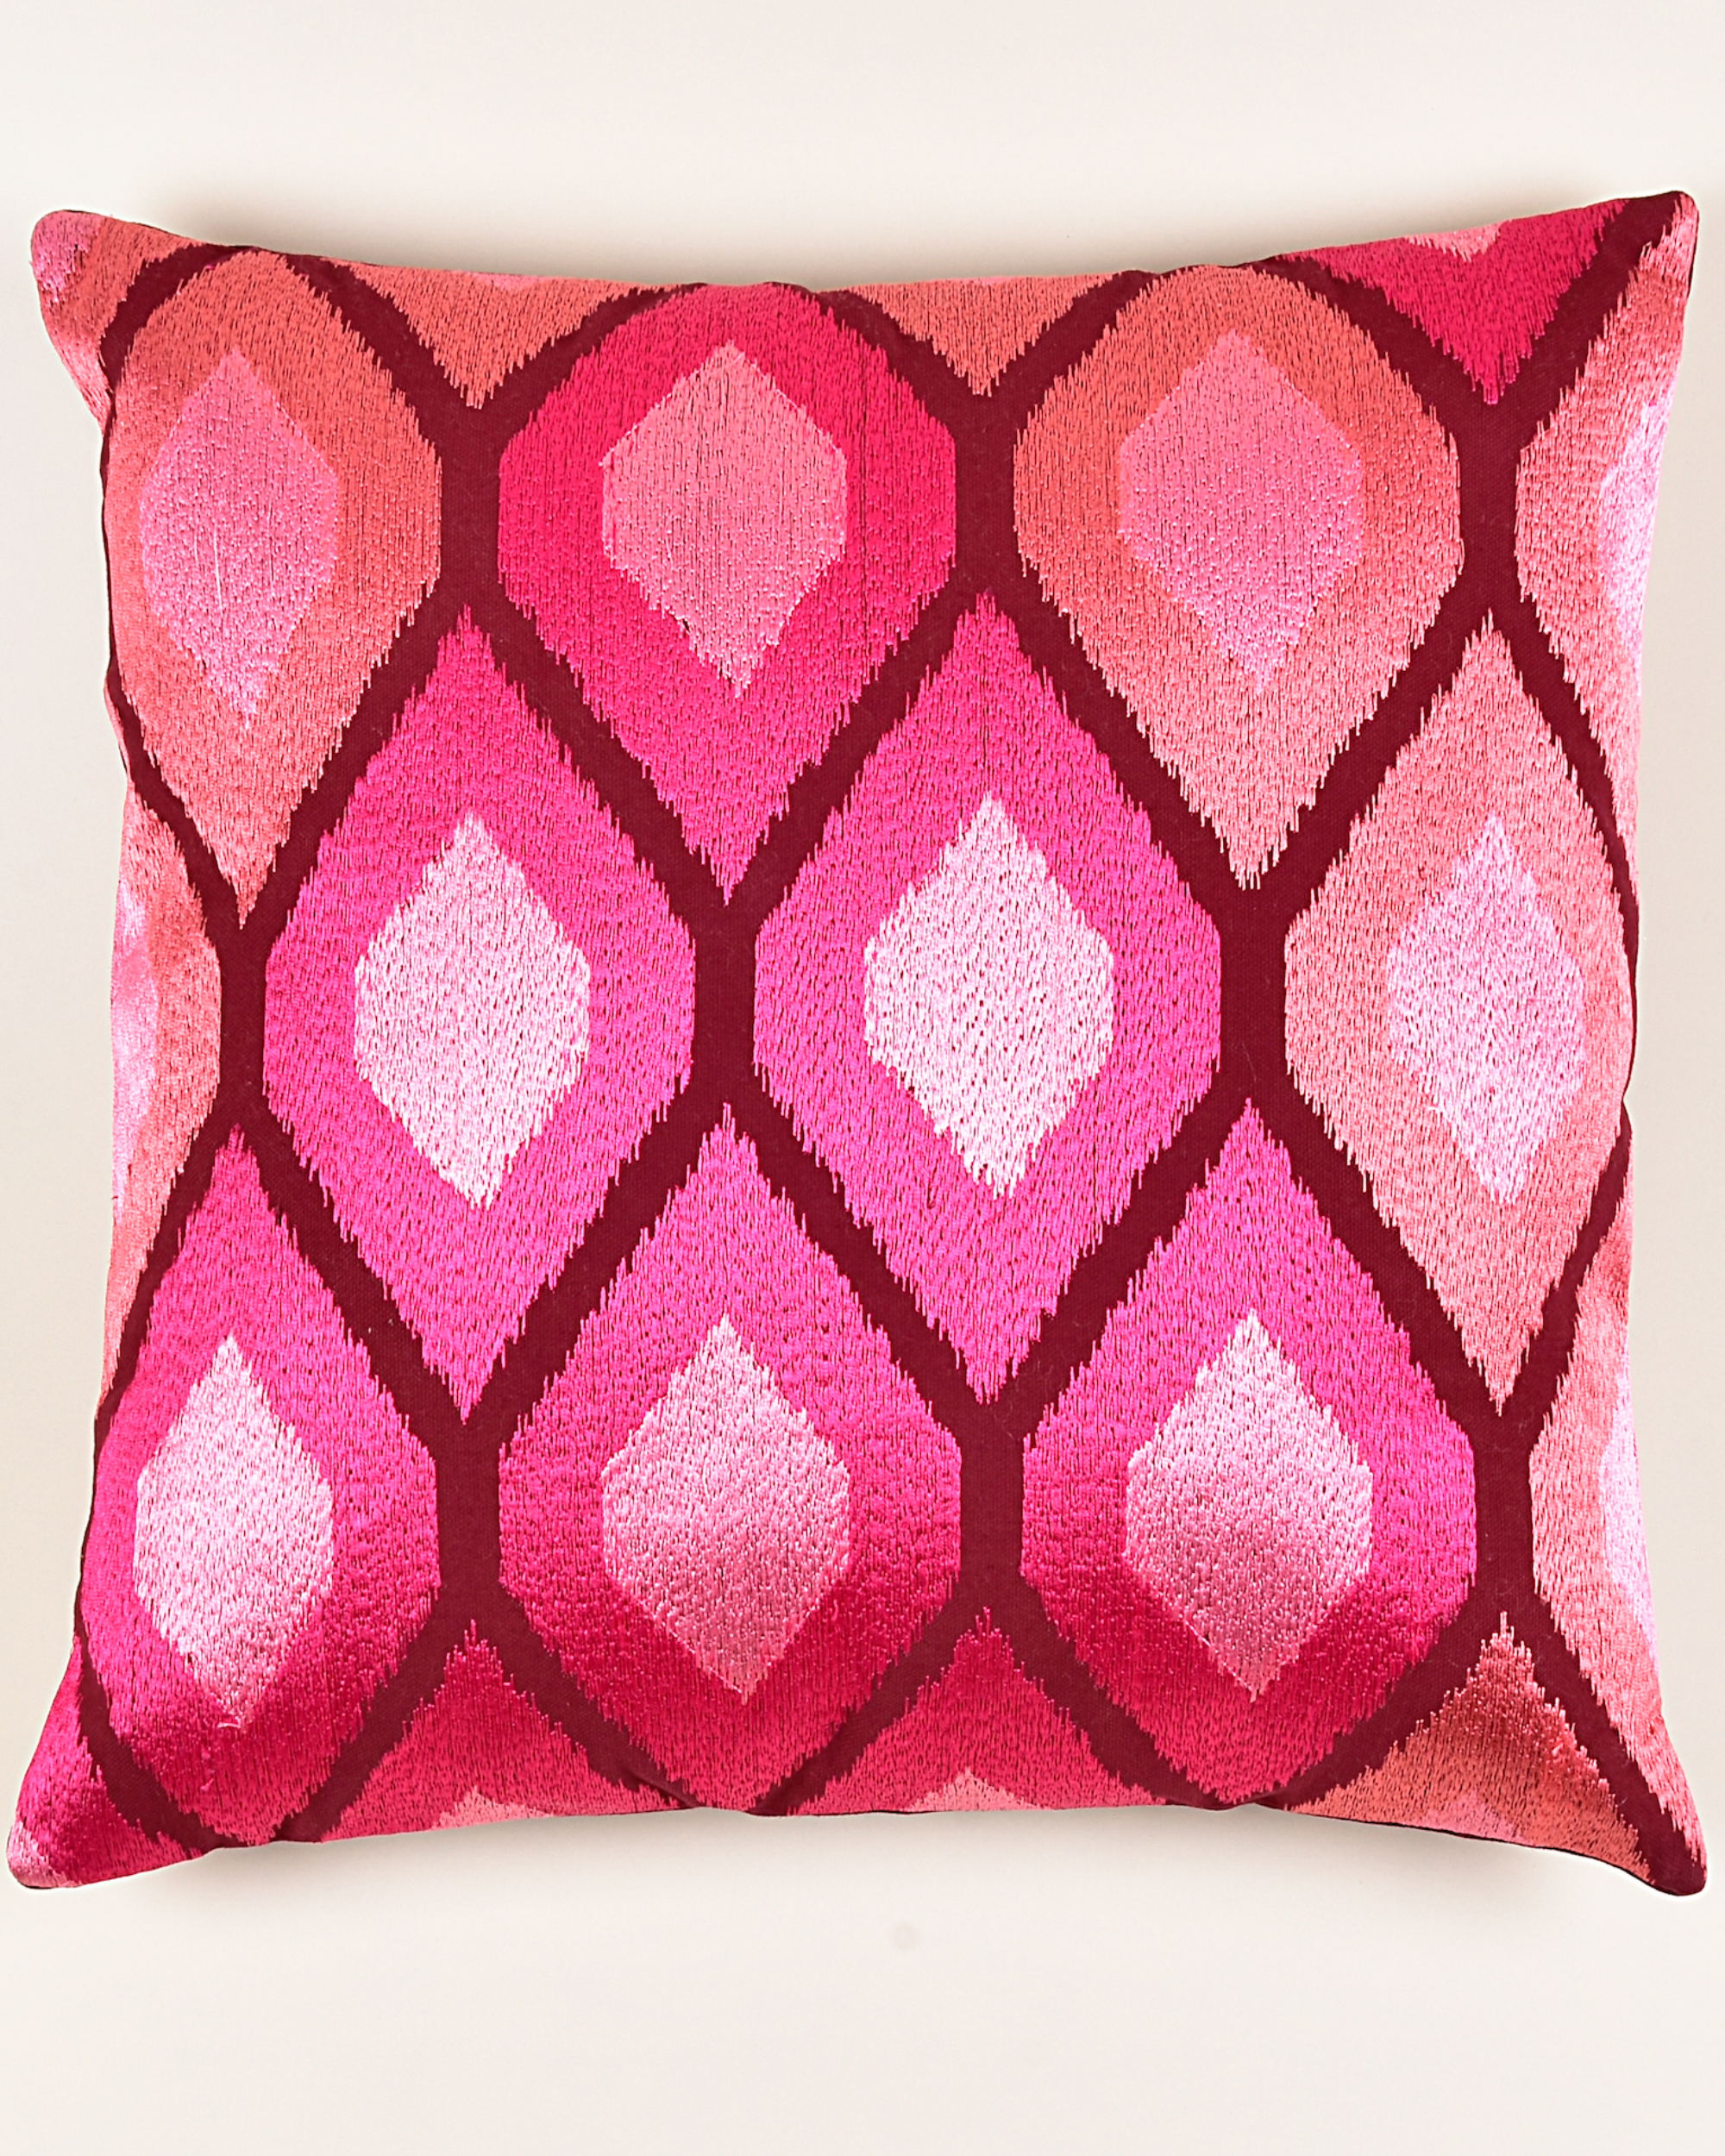 Khiva red cotton cushion cover